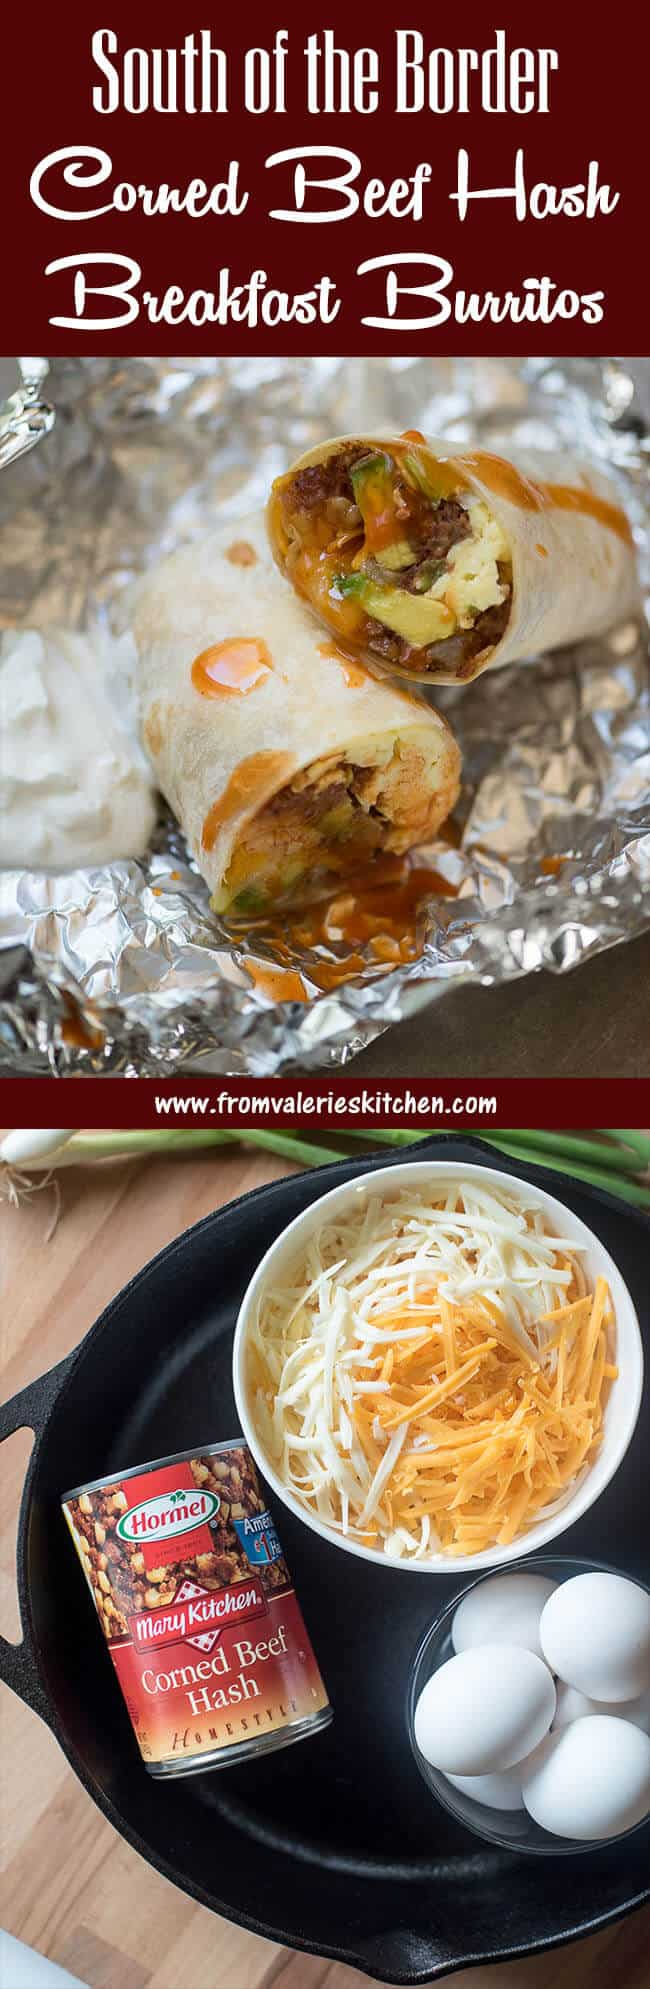 South of the Border Corned Beef Hash Breakfast Burritos